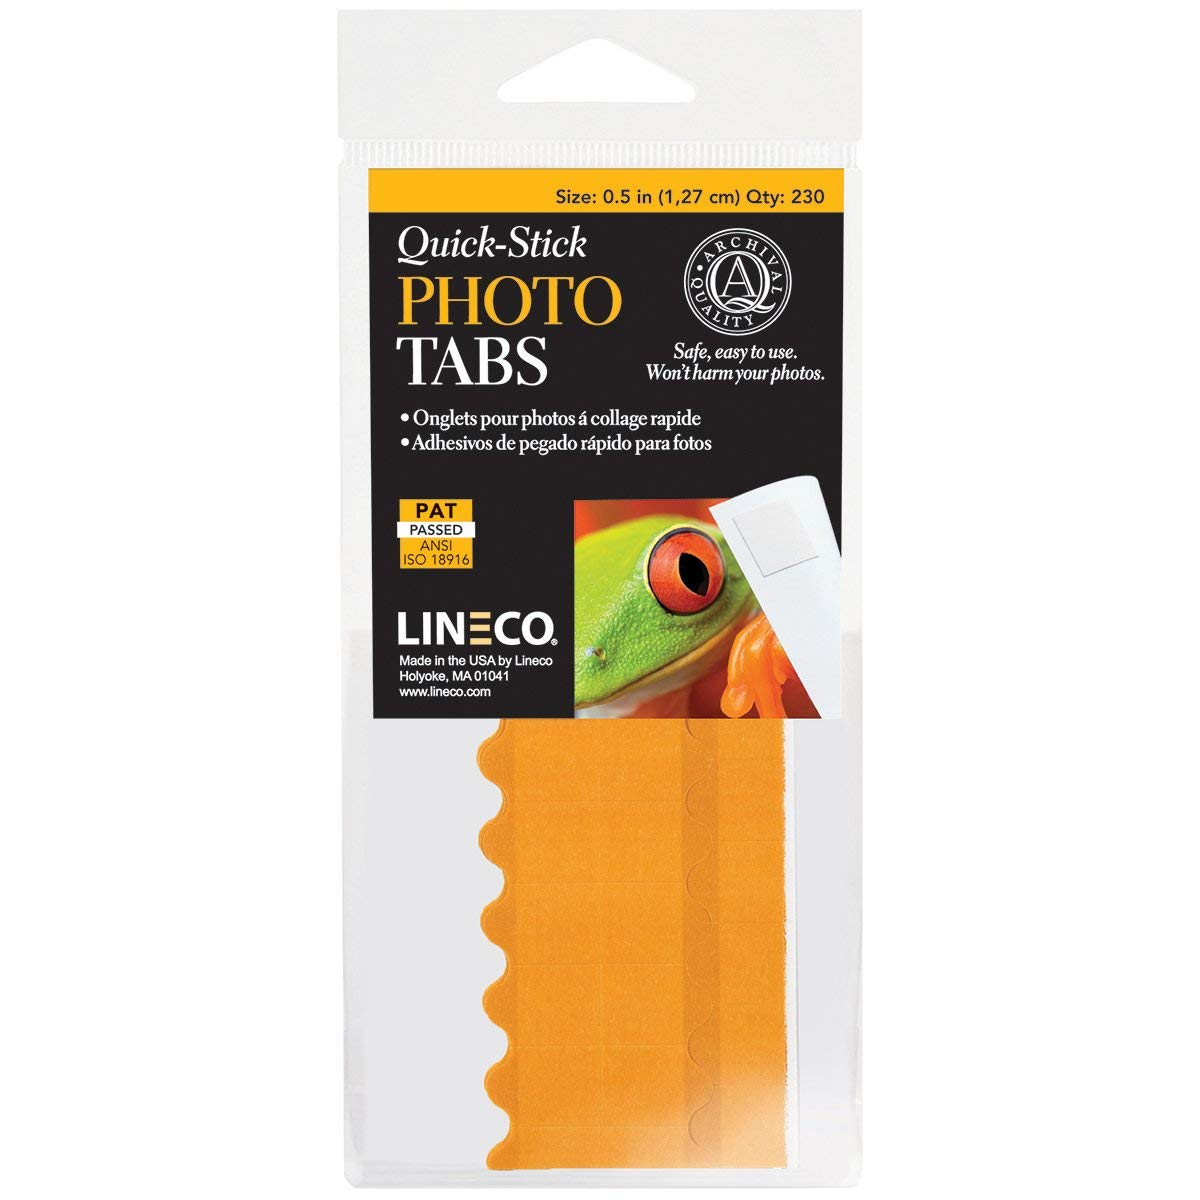 Lineco Infinity Square Photo Mounting Tabs, 0.5 inches, White, Package of 230 (533-0031M)